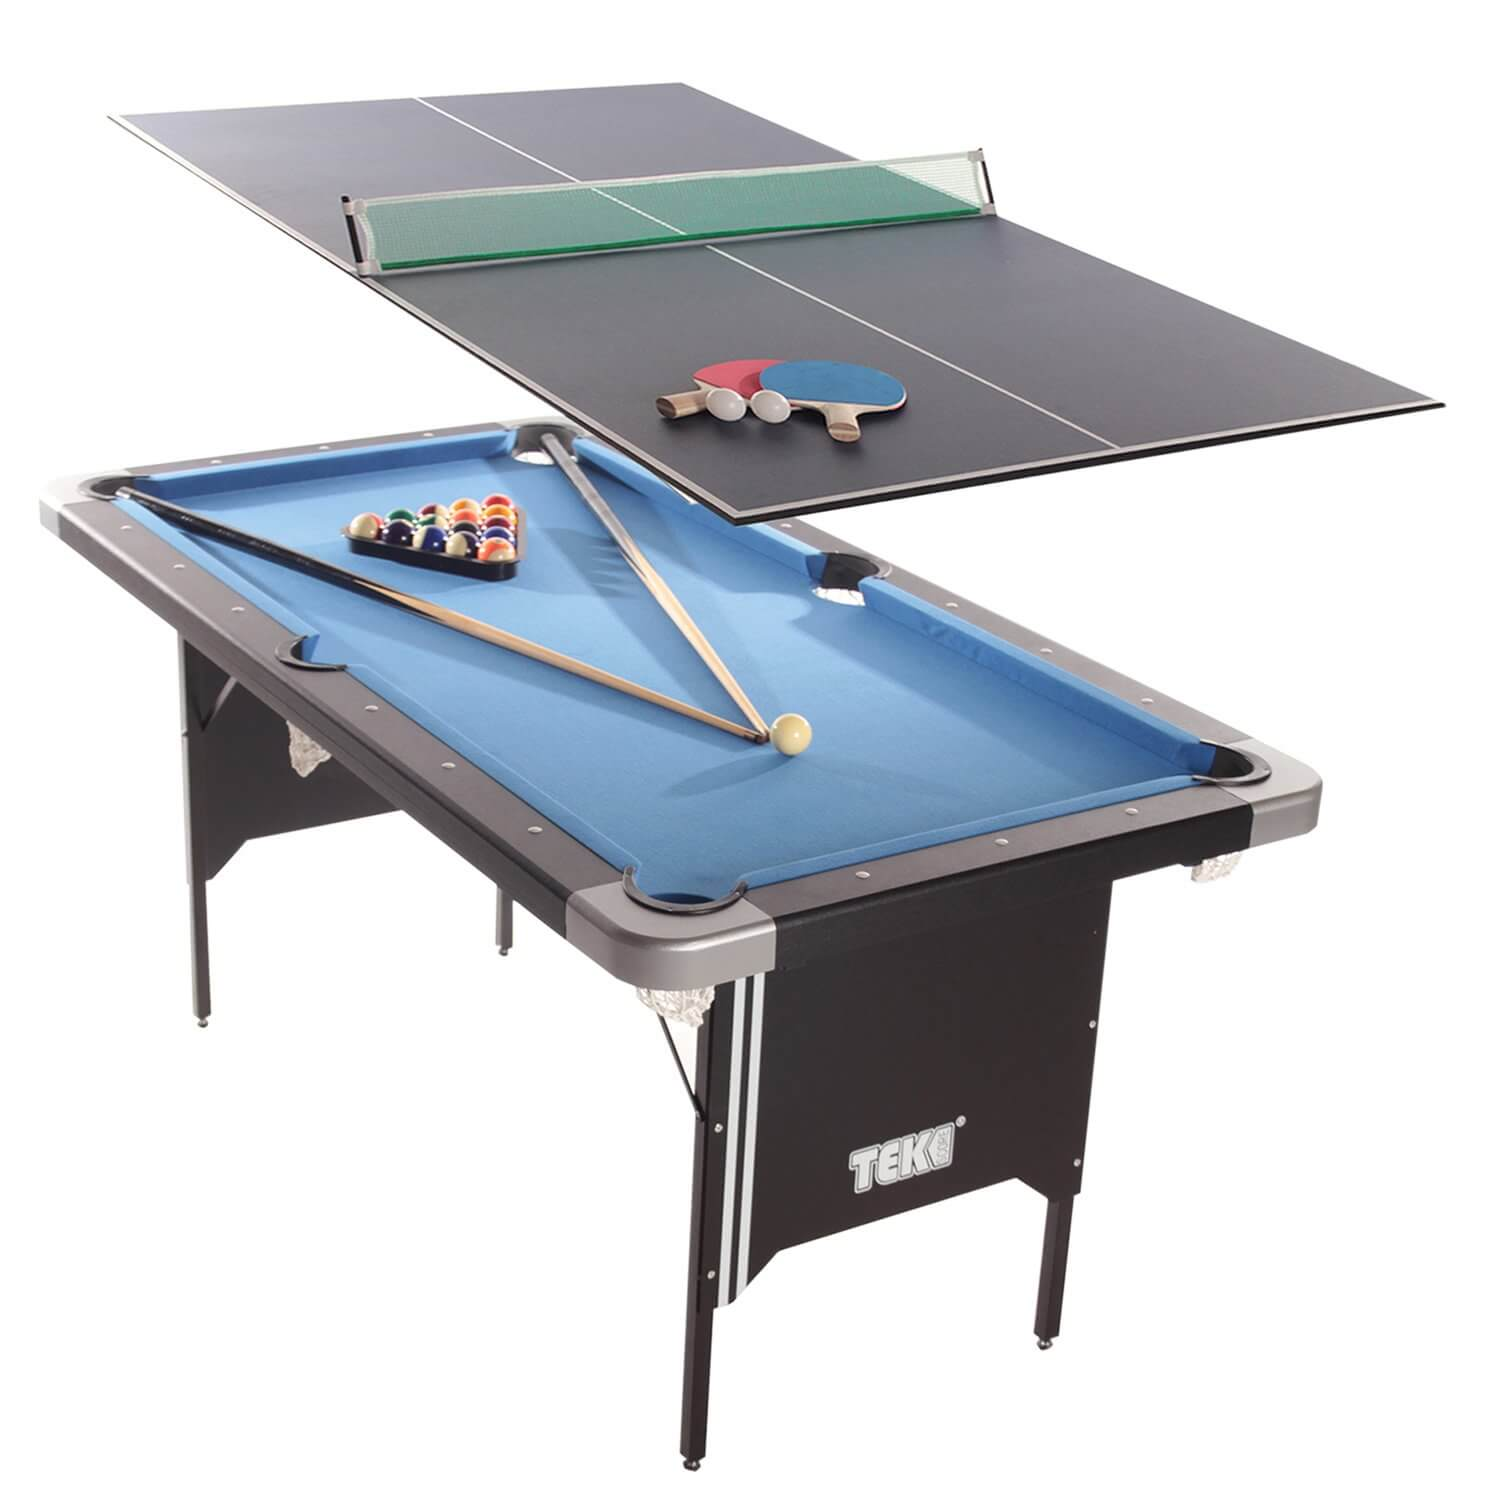 Tekscore Folding Leg Pool Table With Table Tennis Top Liberty Games - Regent pool table